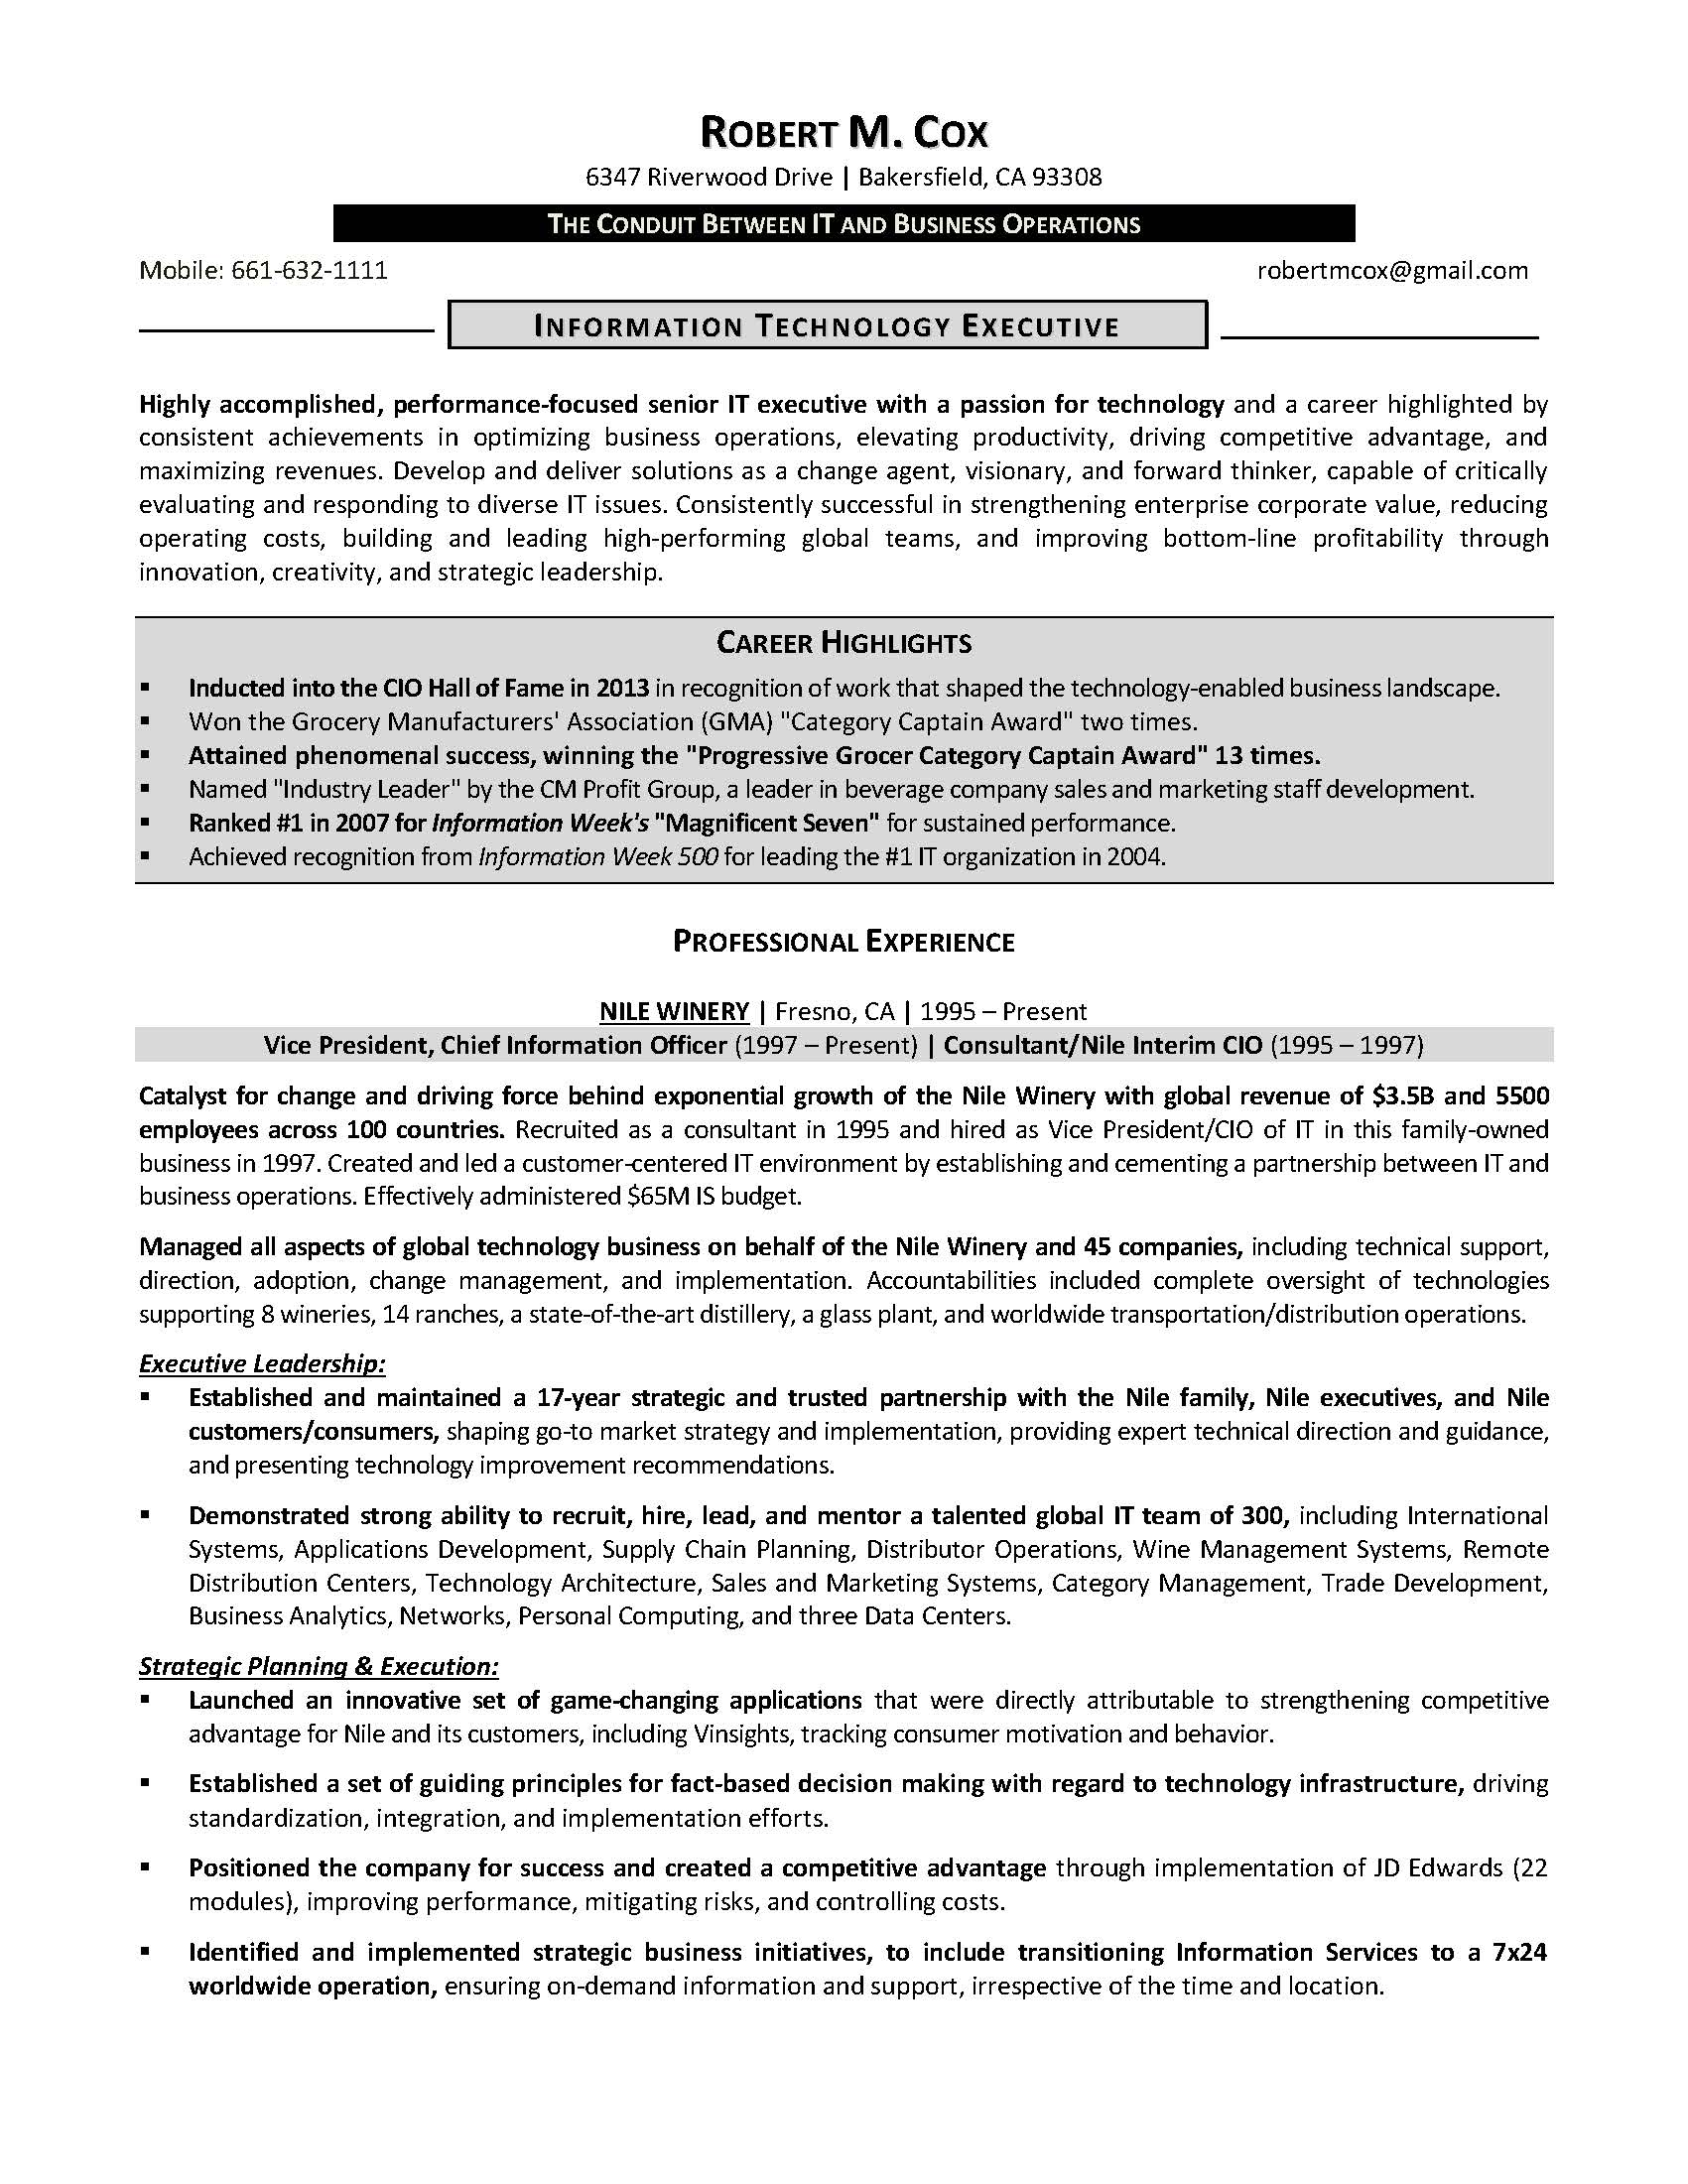 Ad Sales Resume Sample sample resume account executive free – Resume Samples for Sales Executive